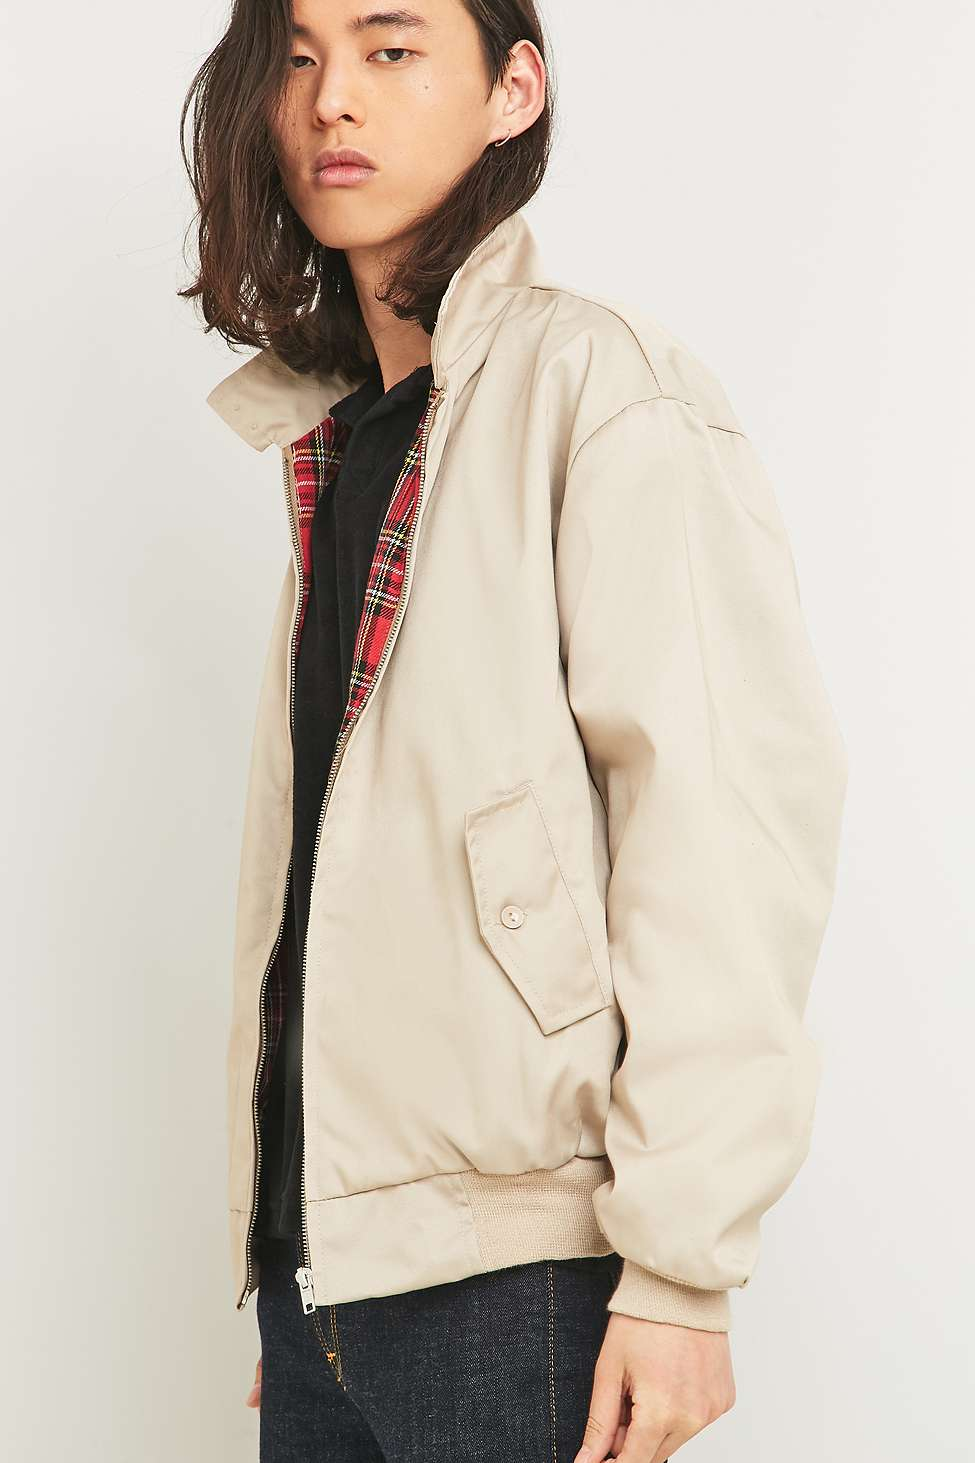 Brahs how do you become a model for urban outfitters brahs how do you become a model for urban outfitters ccuart Images